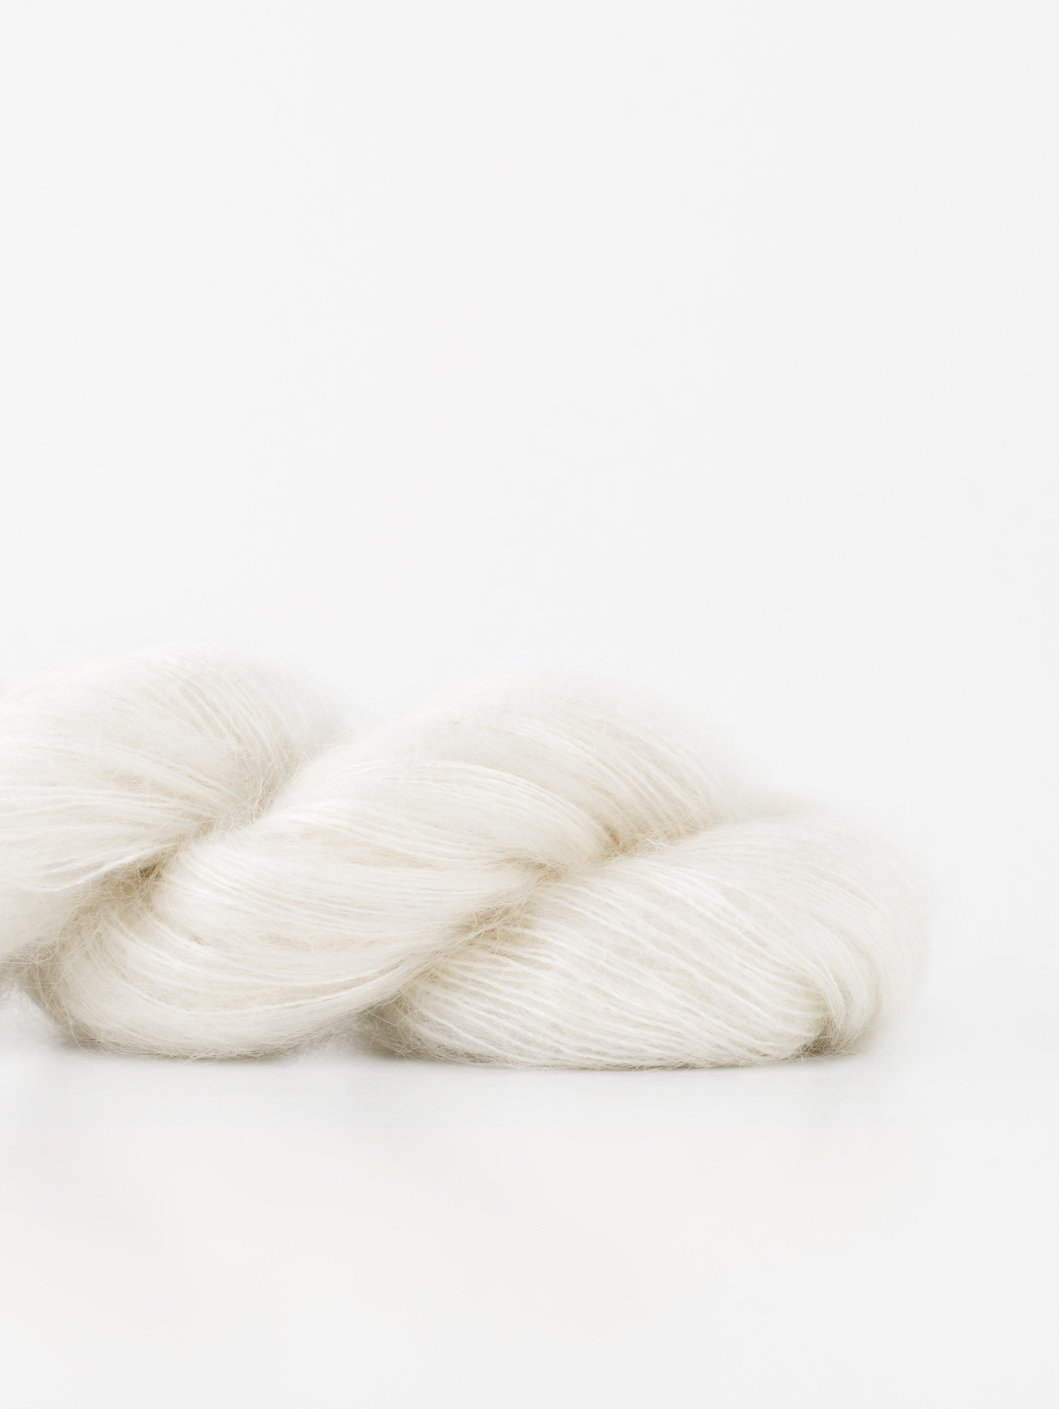 SHIBUI SILK CLOUD IVORY